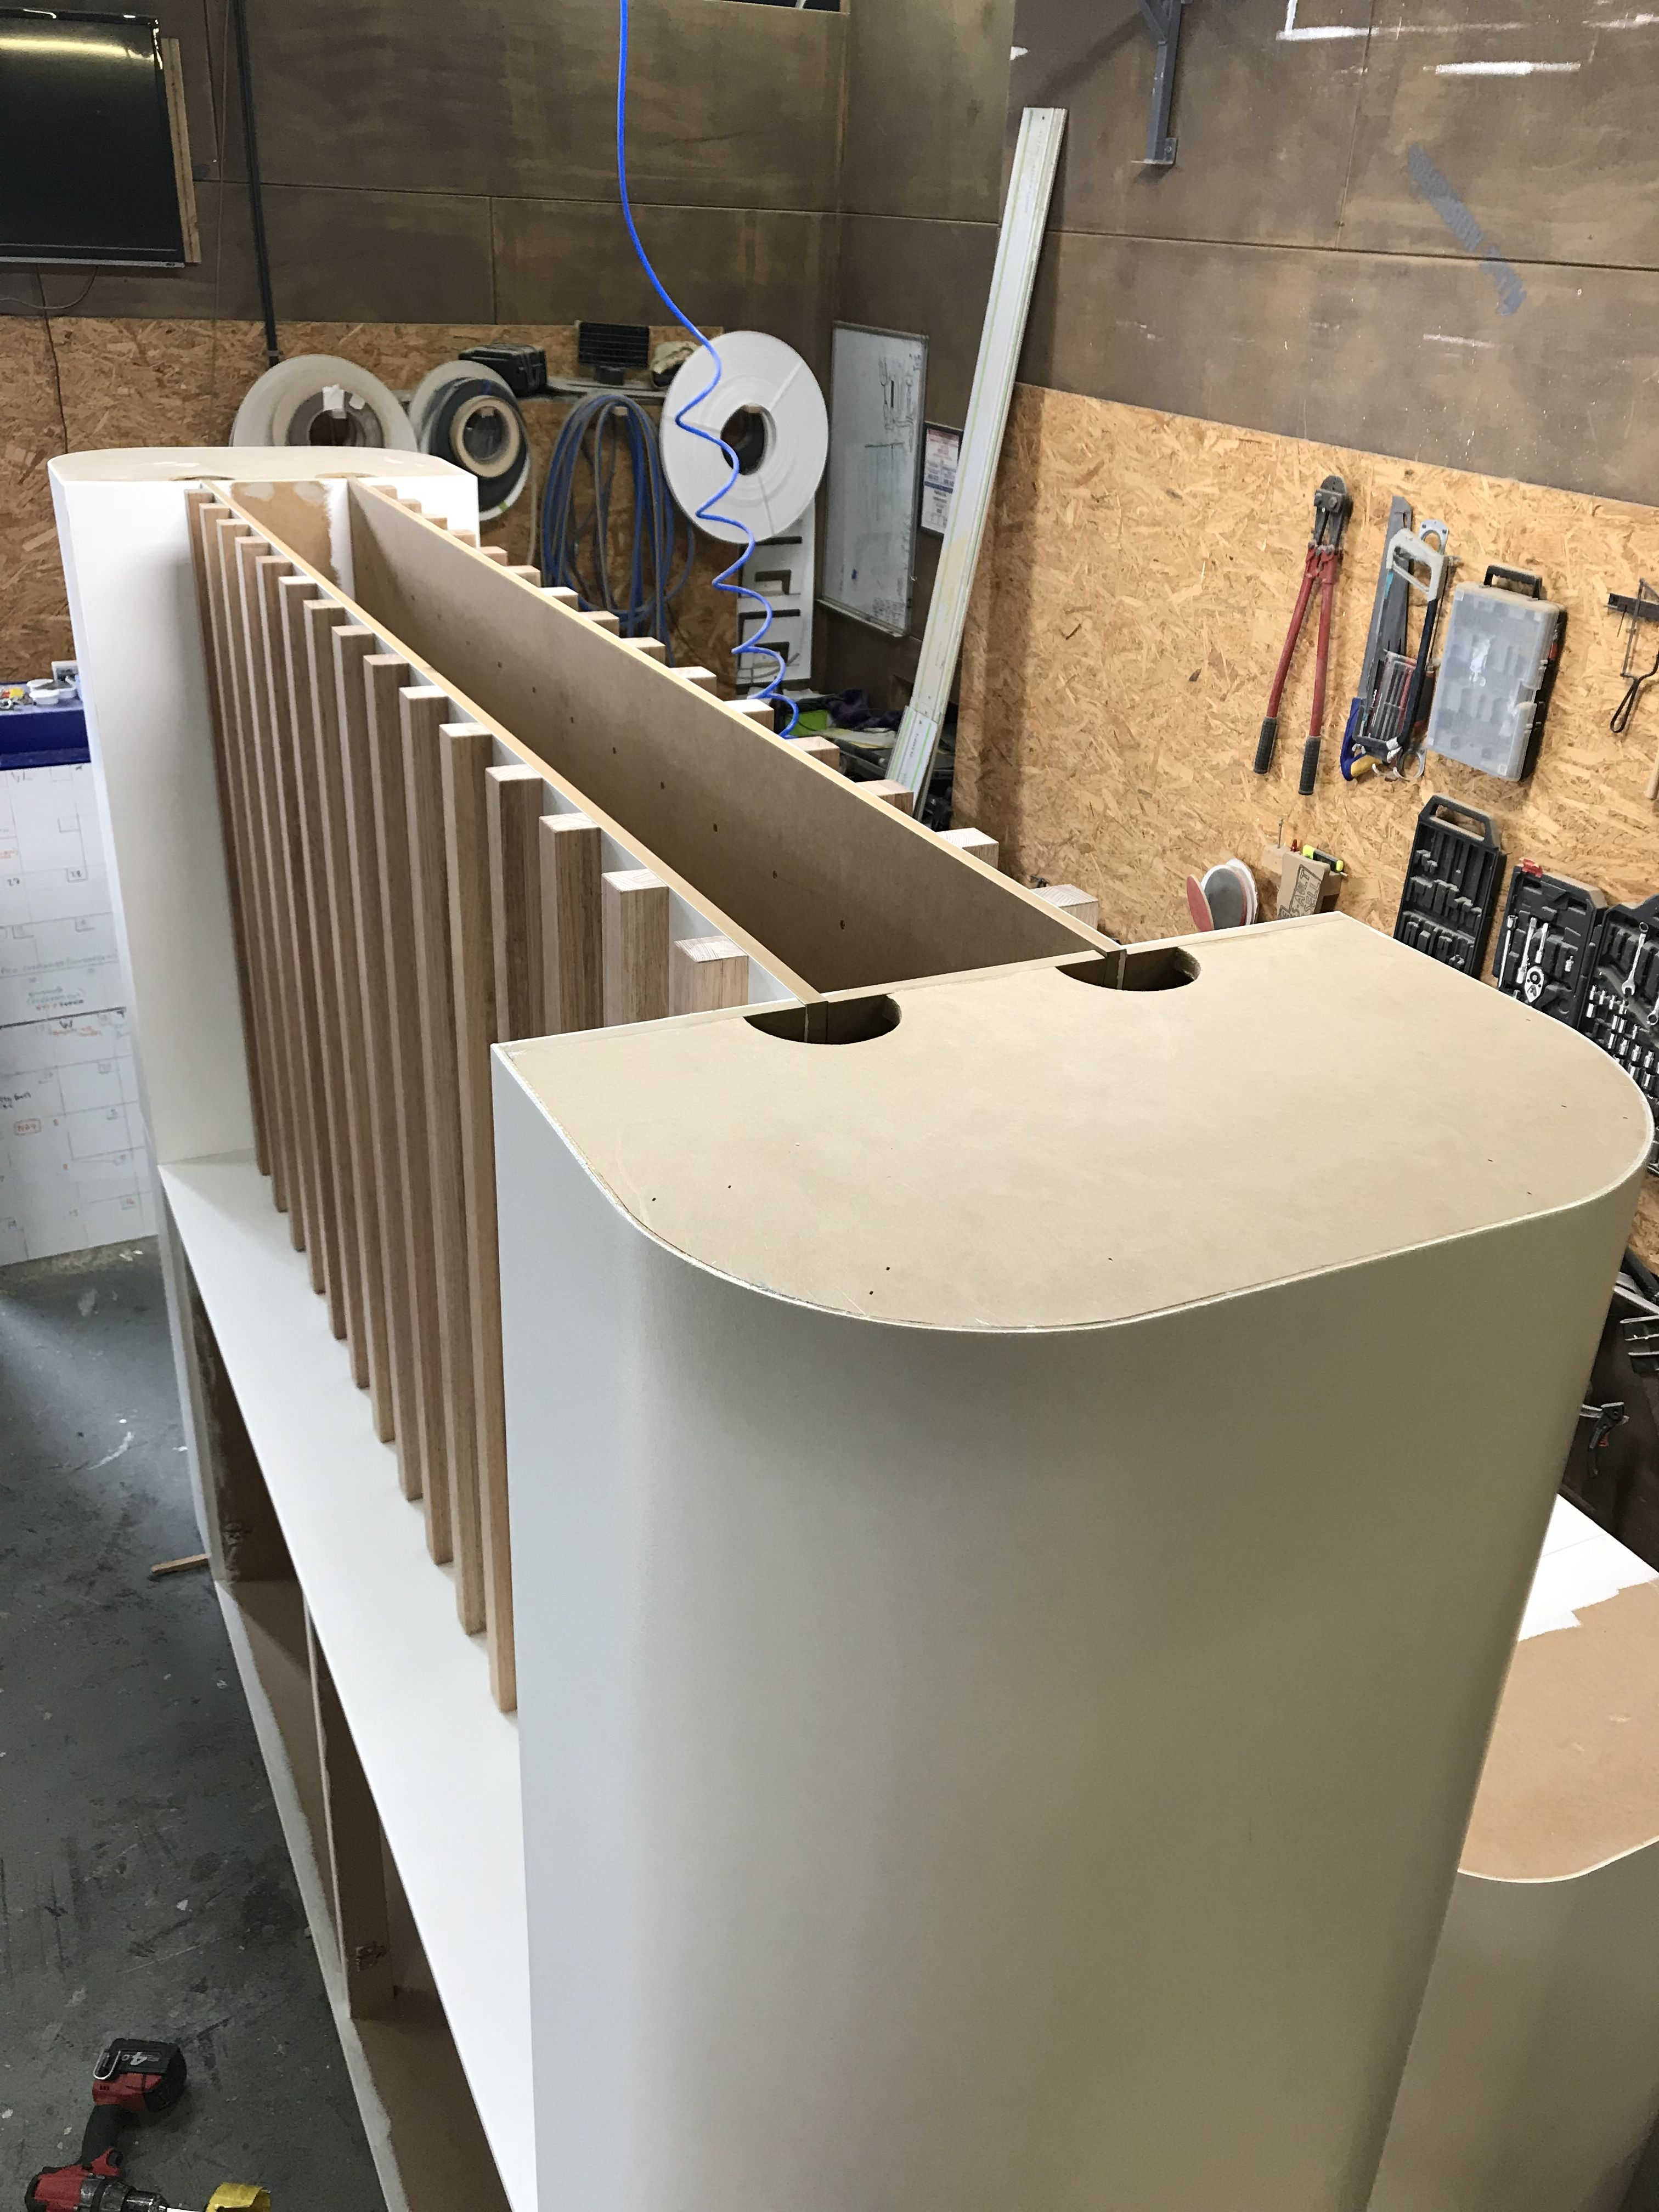 Cnc Cut Components Cladded With Bending Plywood To Create An